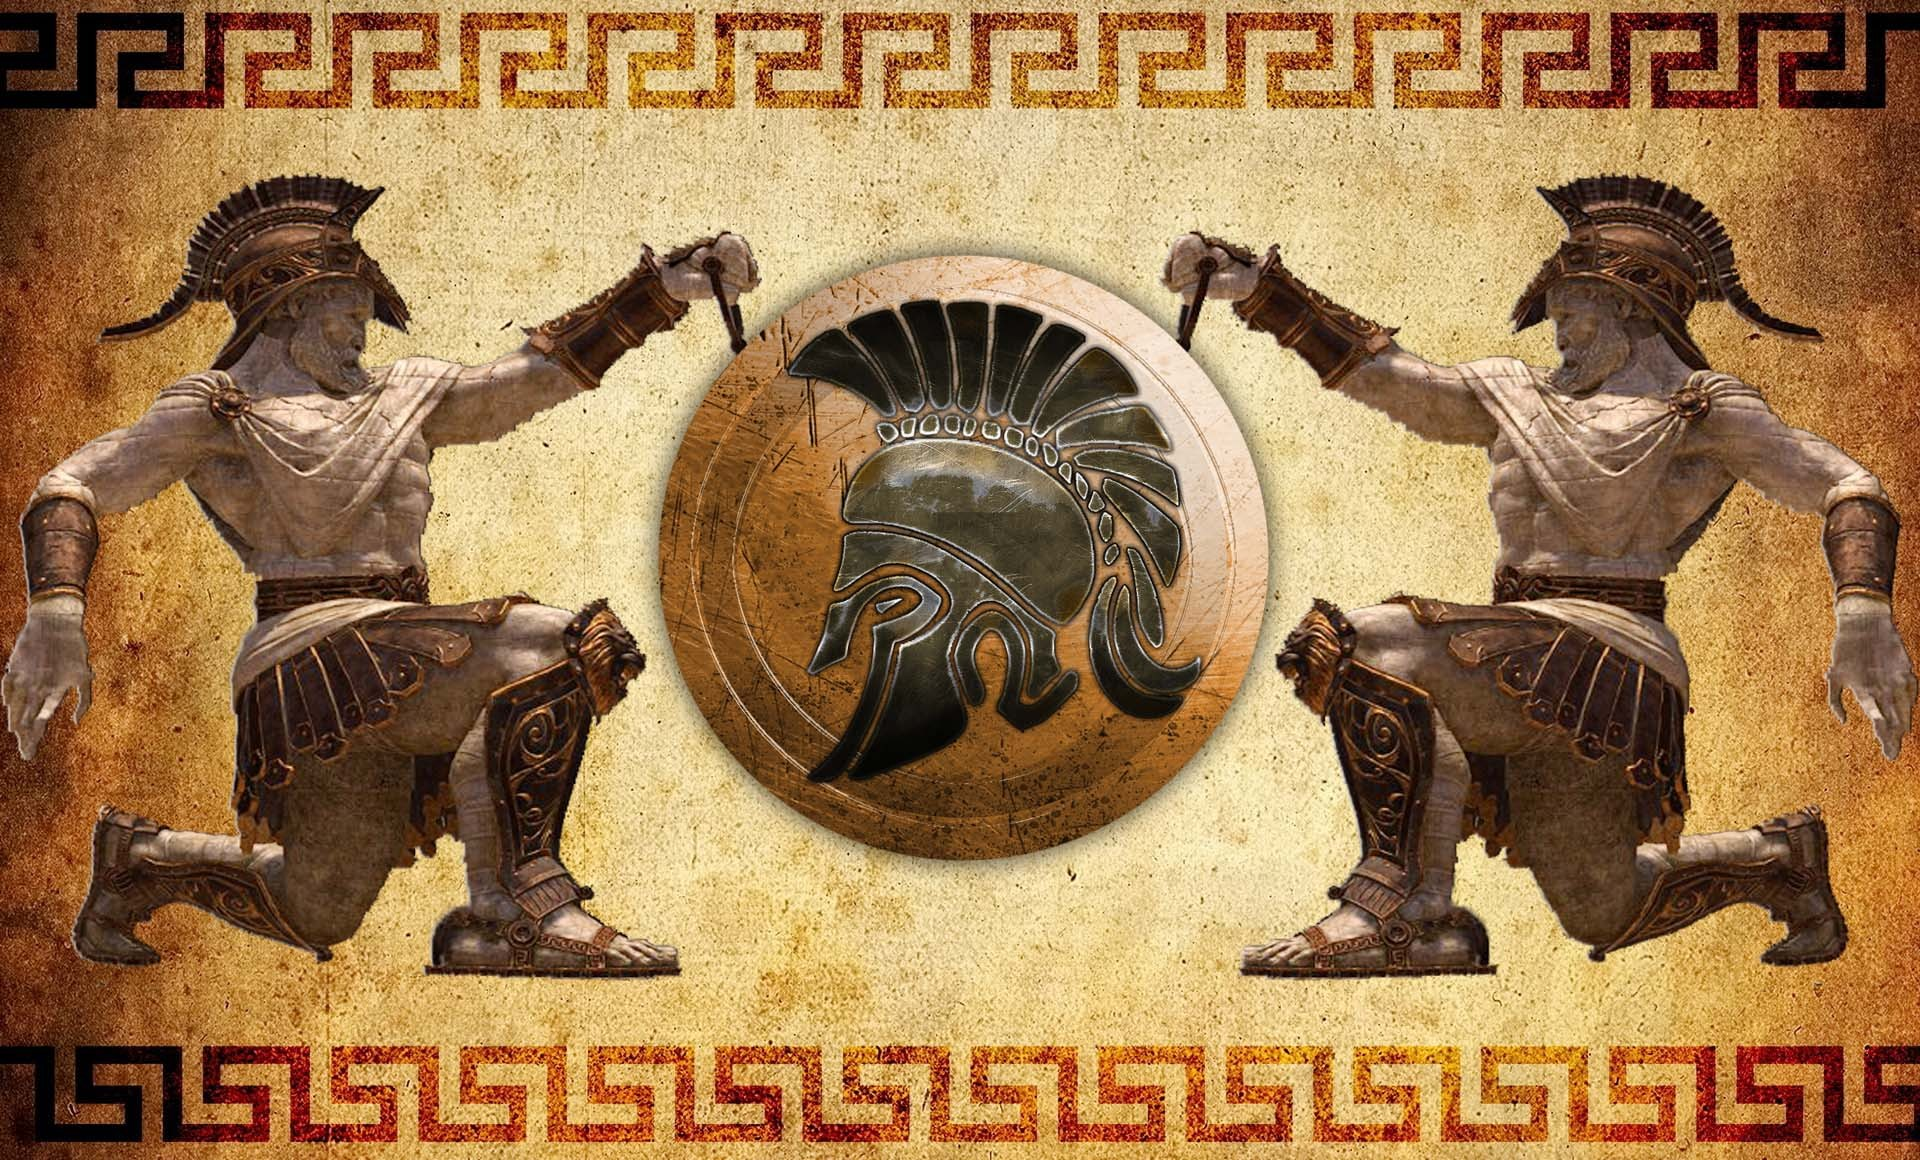 General 1920x1160 coats of arms Greek artwork